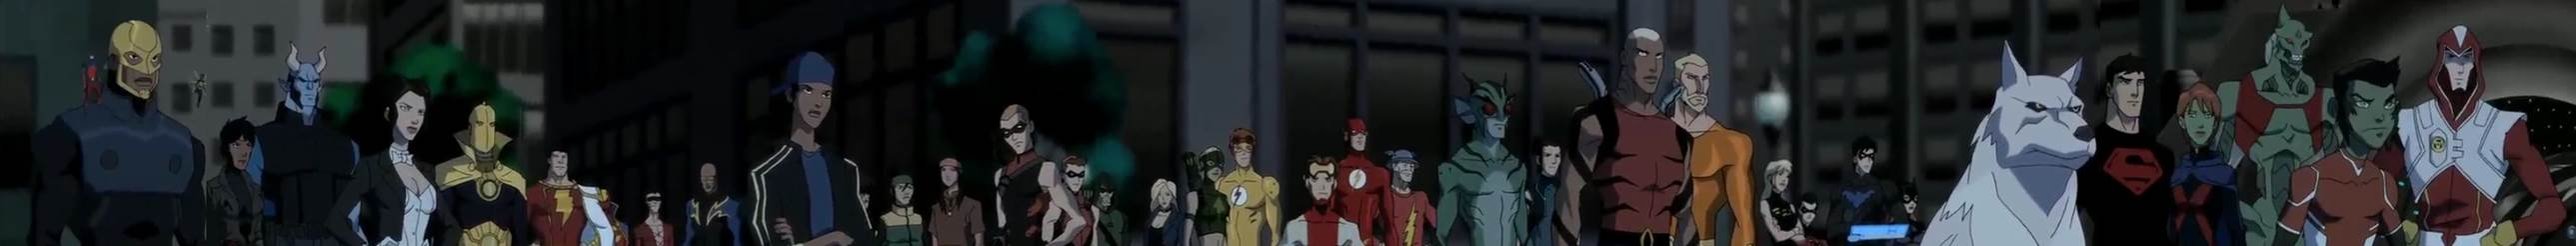 Young Justice Invasion Overall Episode 46 Season 2 Episode 20 Endgame Heroes United 1